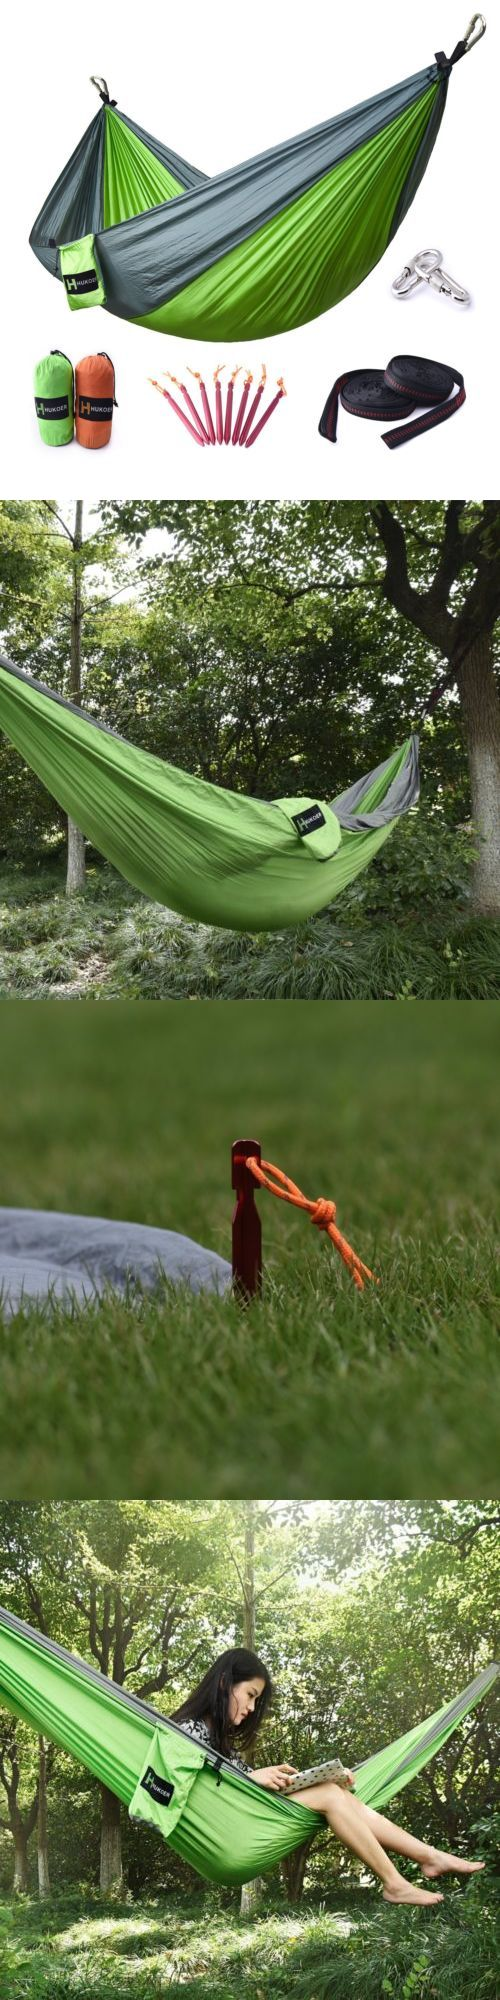 Hammocks 159030: Portable Double Camping Hammock Outdoor Sleeping Backyard Hanging Travel Bed -> BUY IT NOW ONLY: $31.99 on eBay!